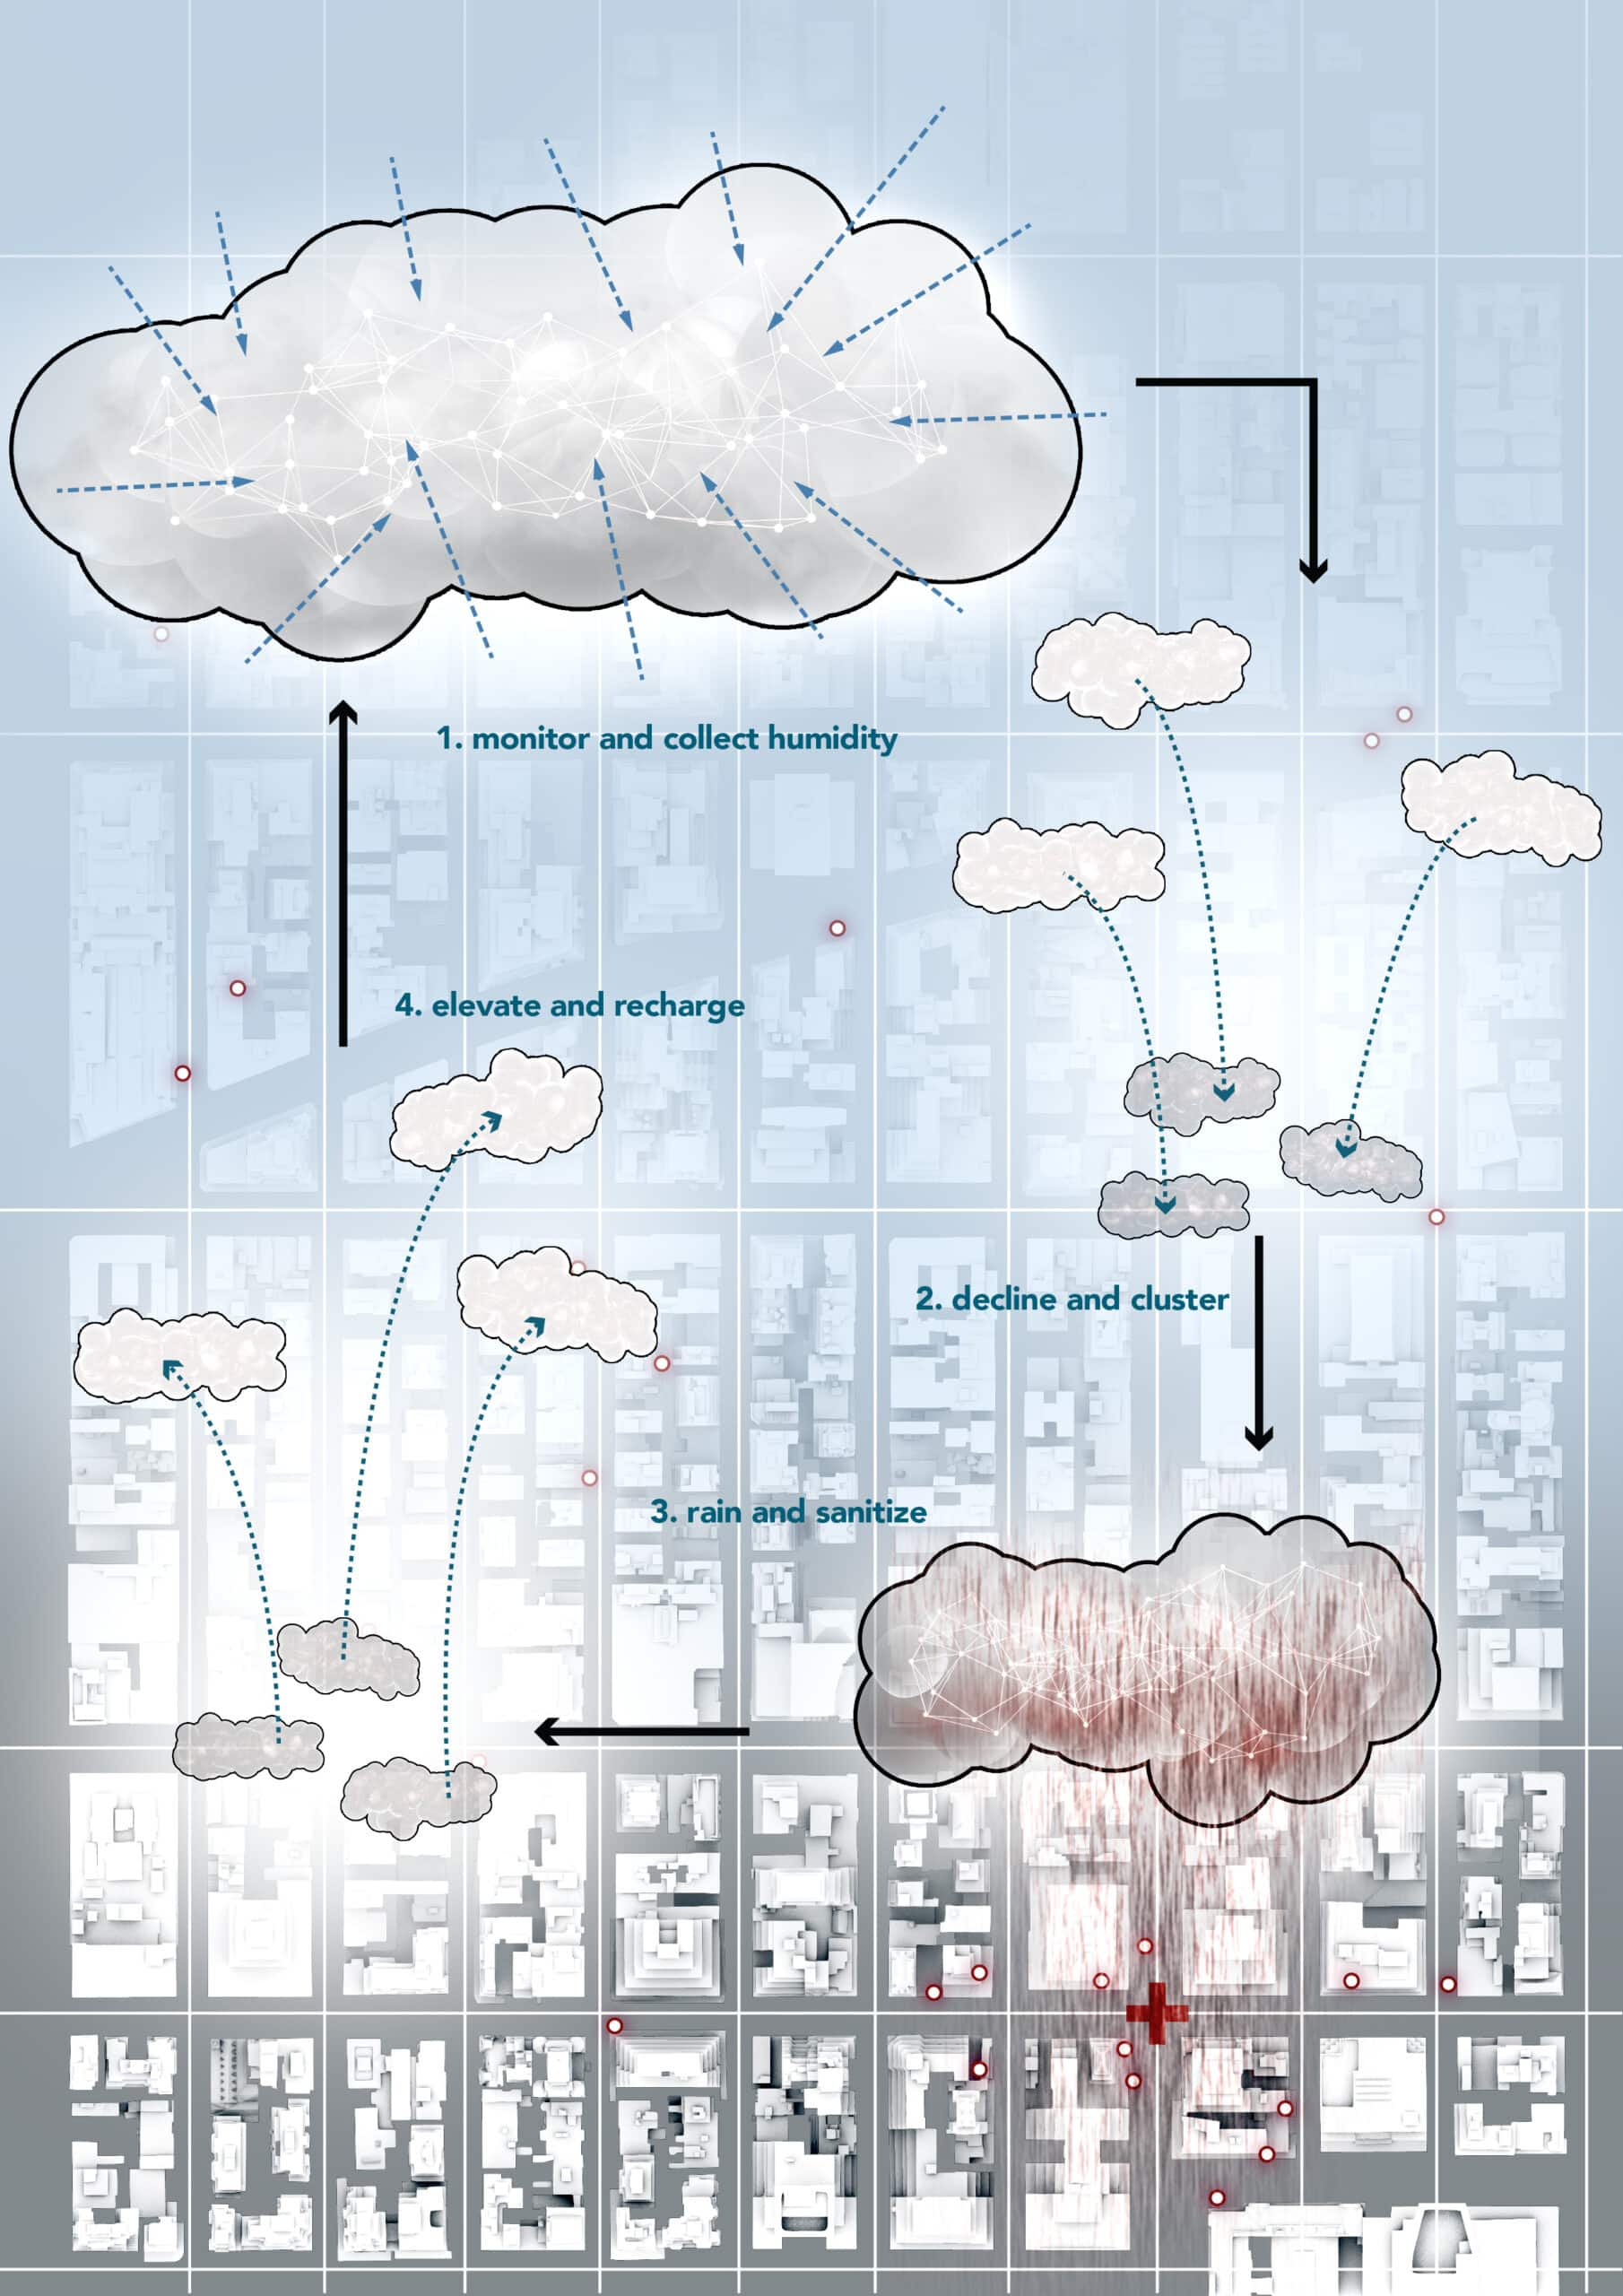 19245_CLOUDs_TECHNICAL IMAGE